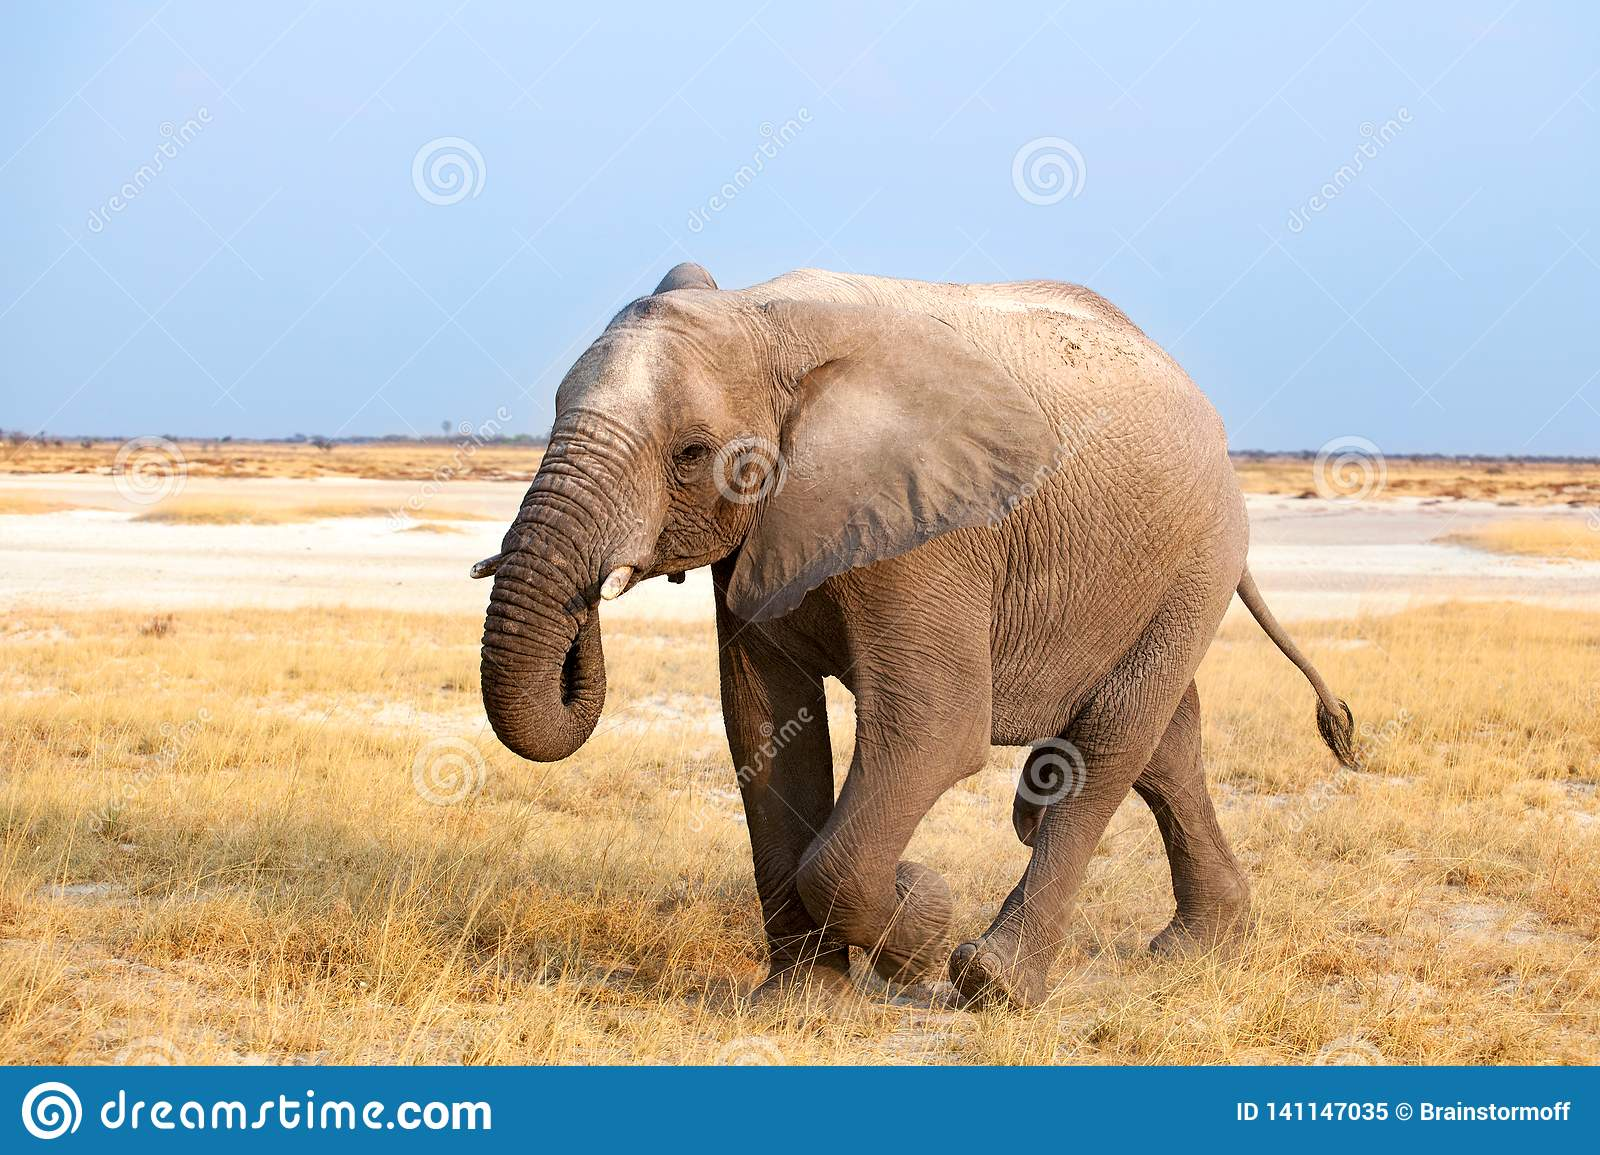 Big male elephant with long trunk walking on yellow grass close up in Etosha National Park, Namibia, Southern Africa